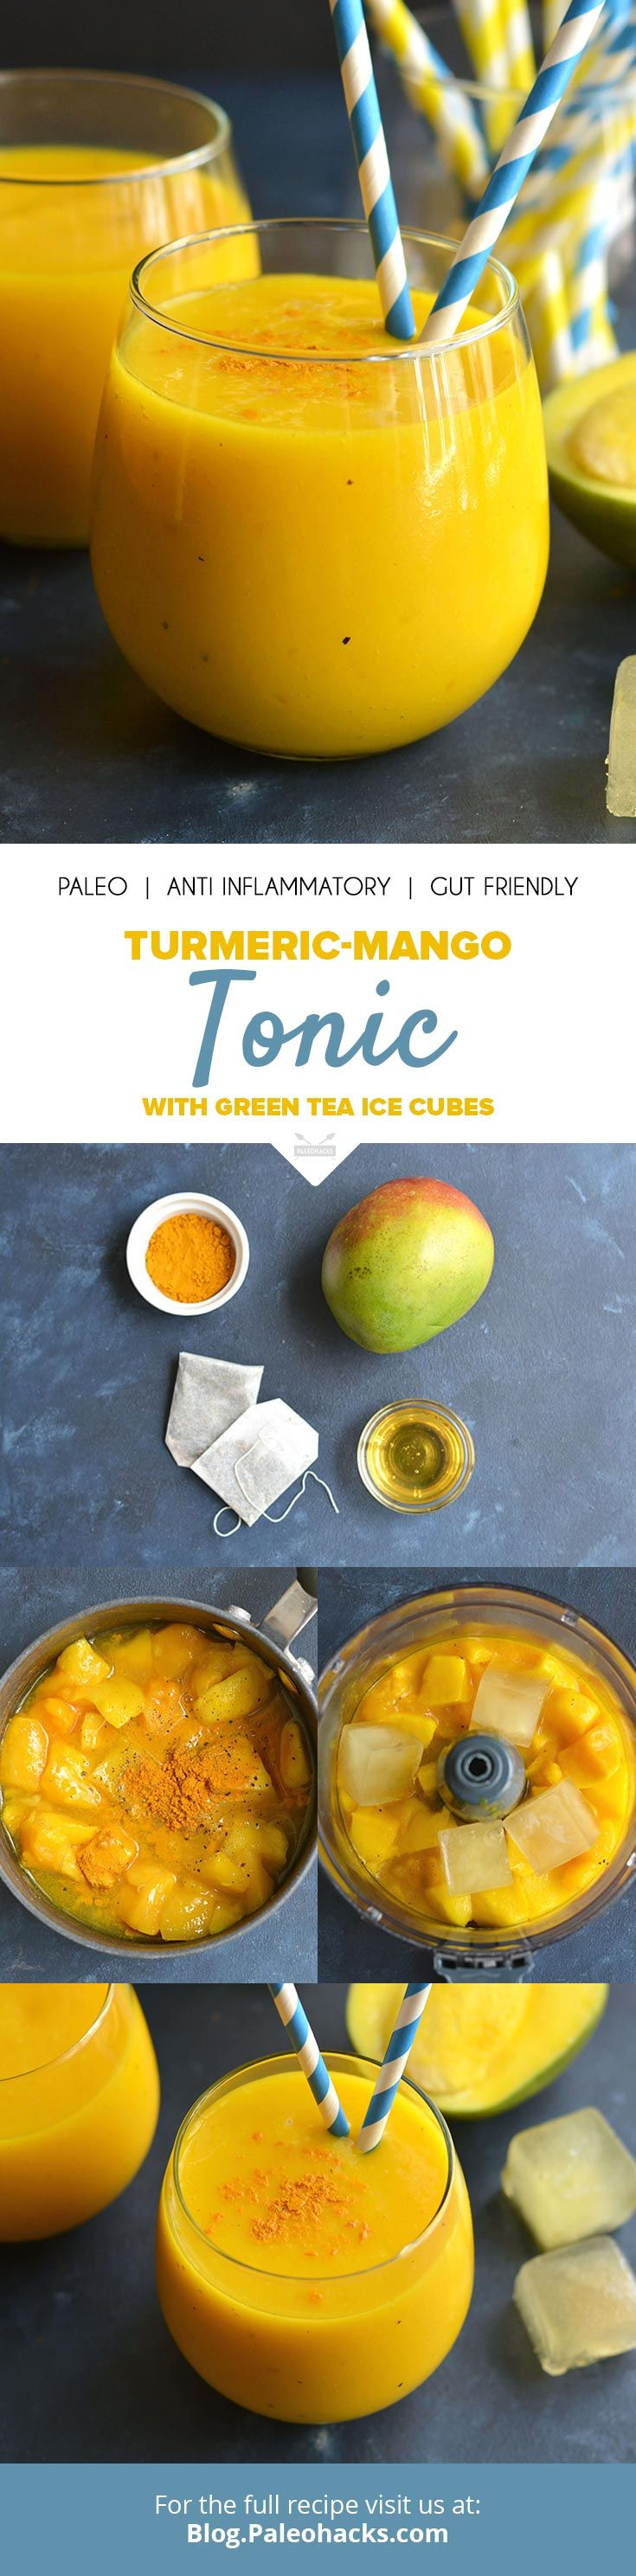 Treat your body to a sweet antioxidant and anti-inflammatory boosting drink with this Iced Mango Turmeric Tonic! Get the recipe here: http://paleo.co/turmericmangodrink